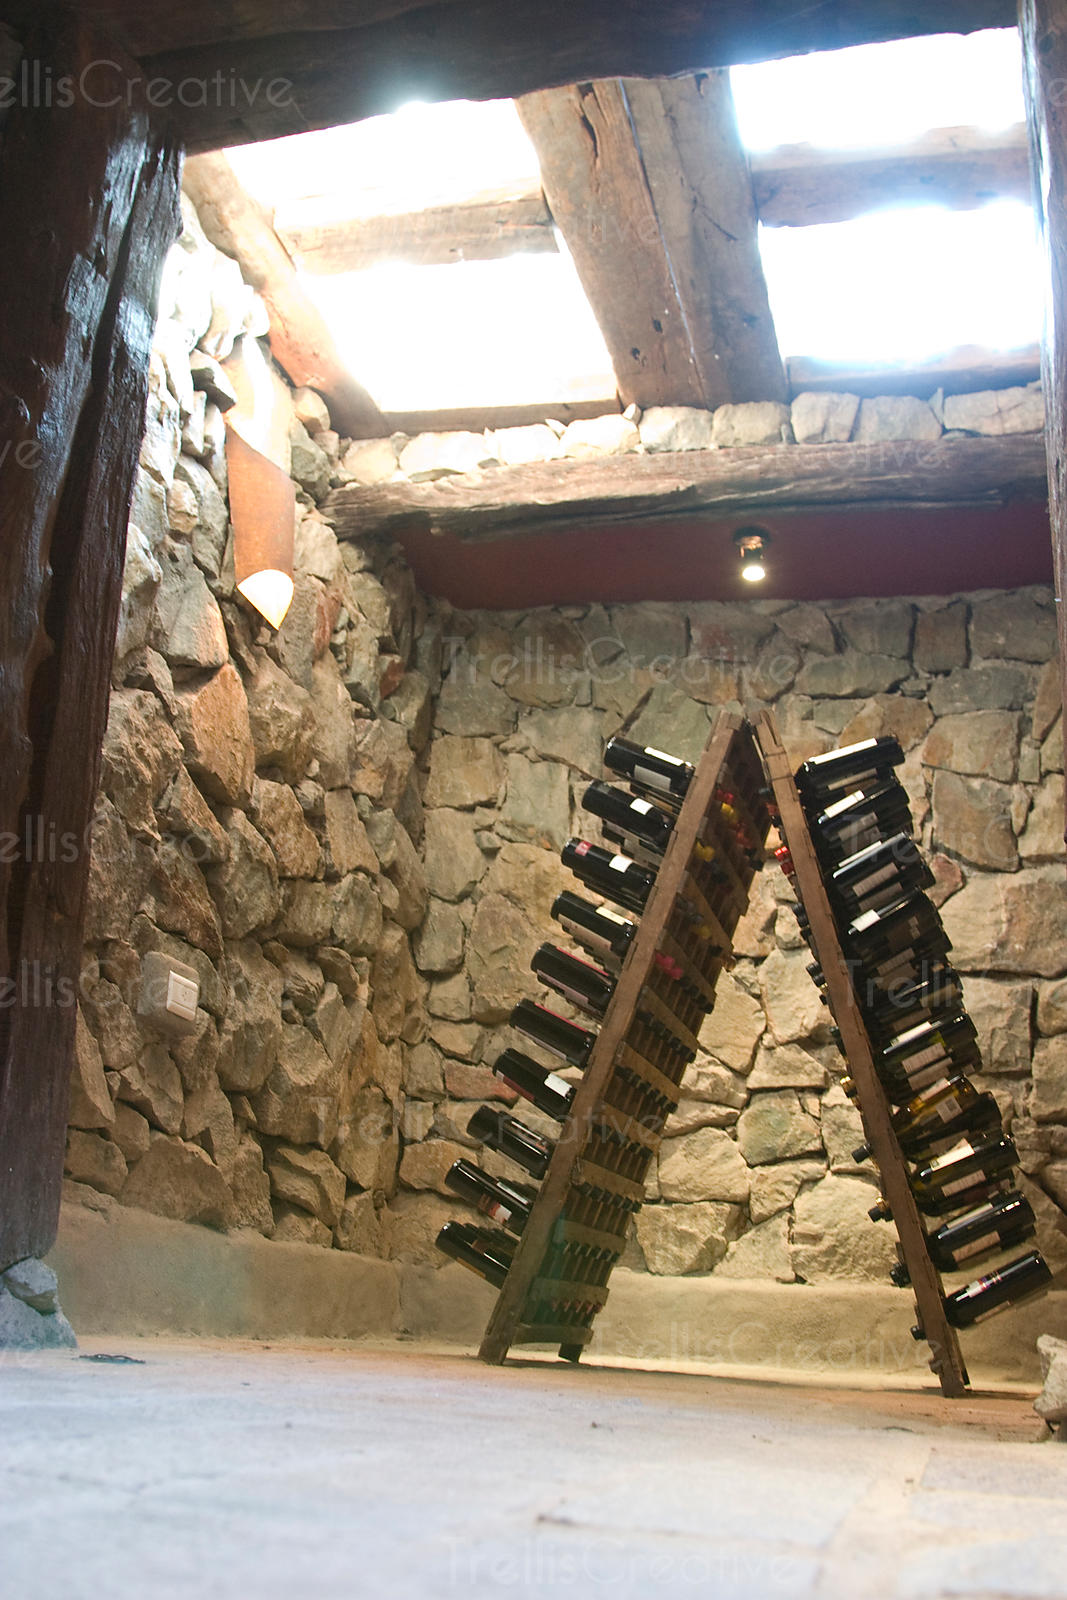 A riddilng rack filled with wine bottles in a wine cellar